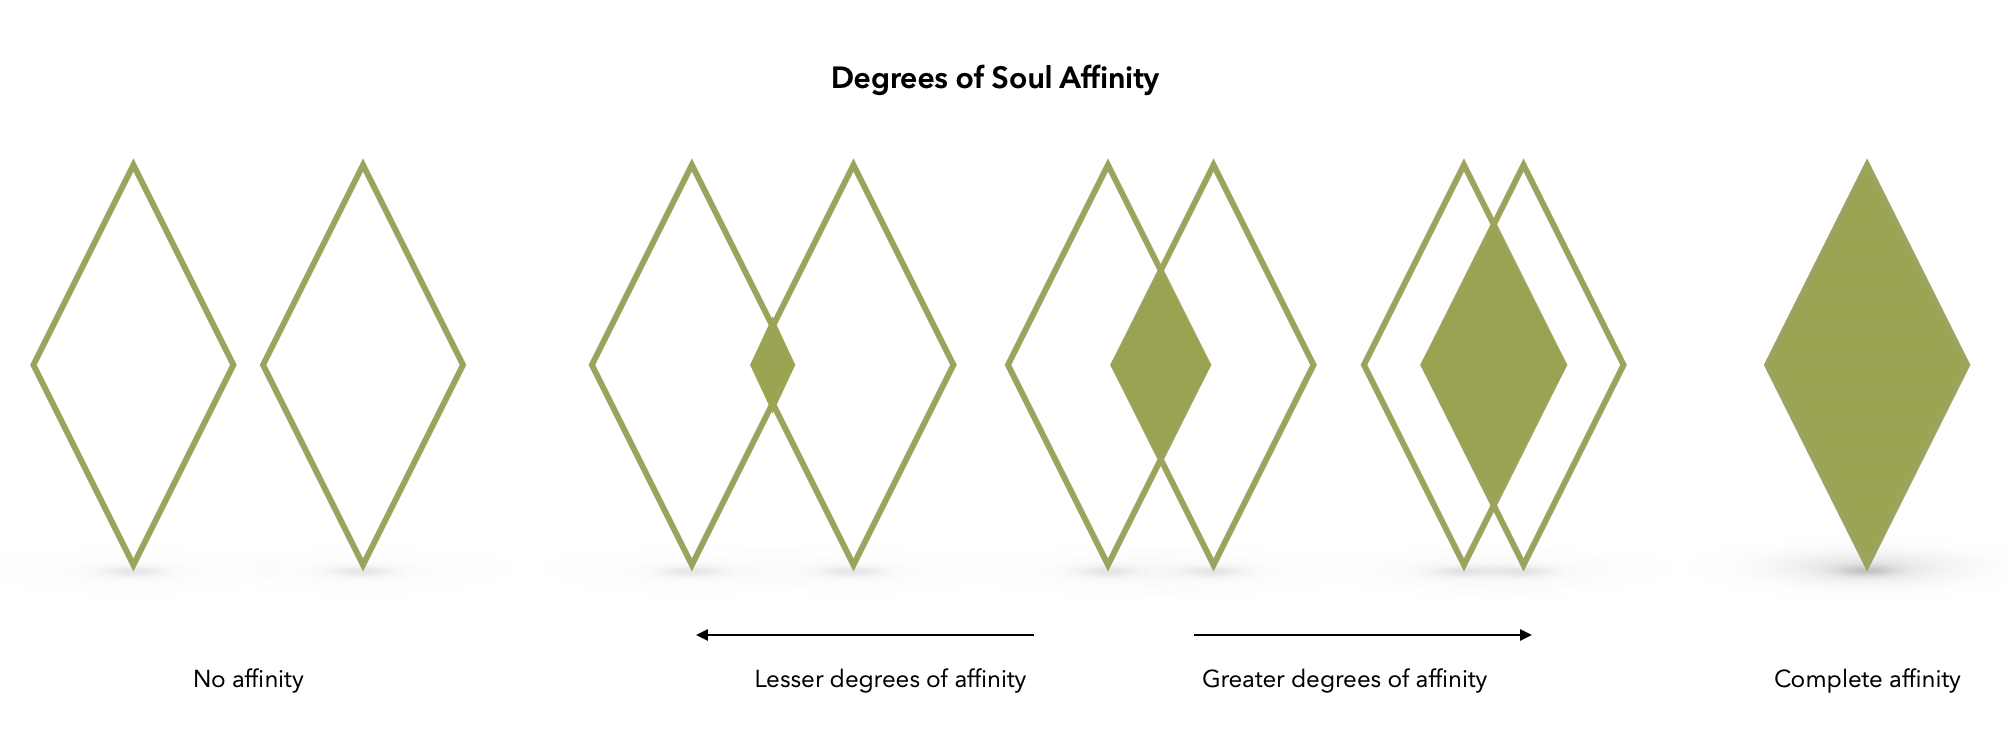 Degrees of Soul Affinity